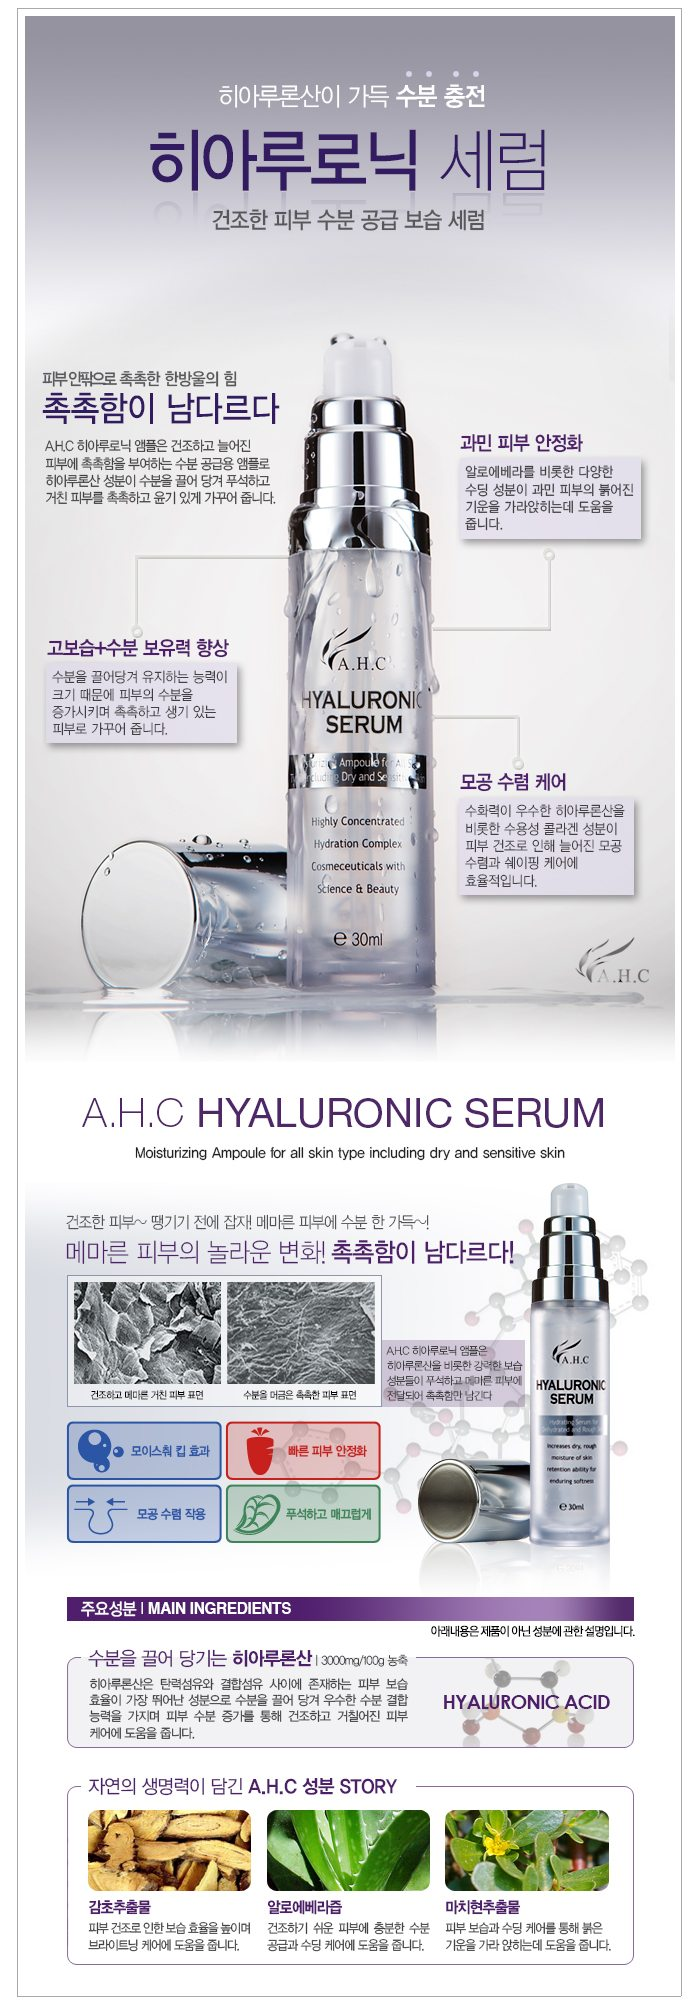 AHC Hyaluronic Serum 30ml malaysia singapore indonesia